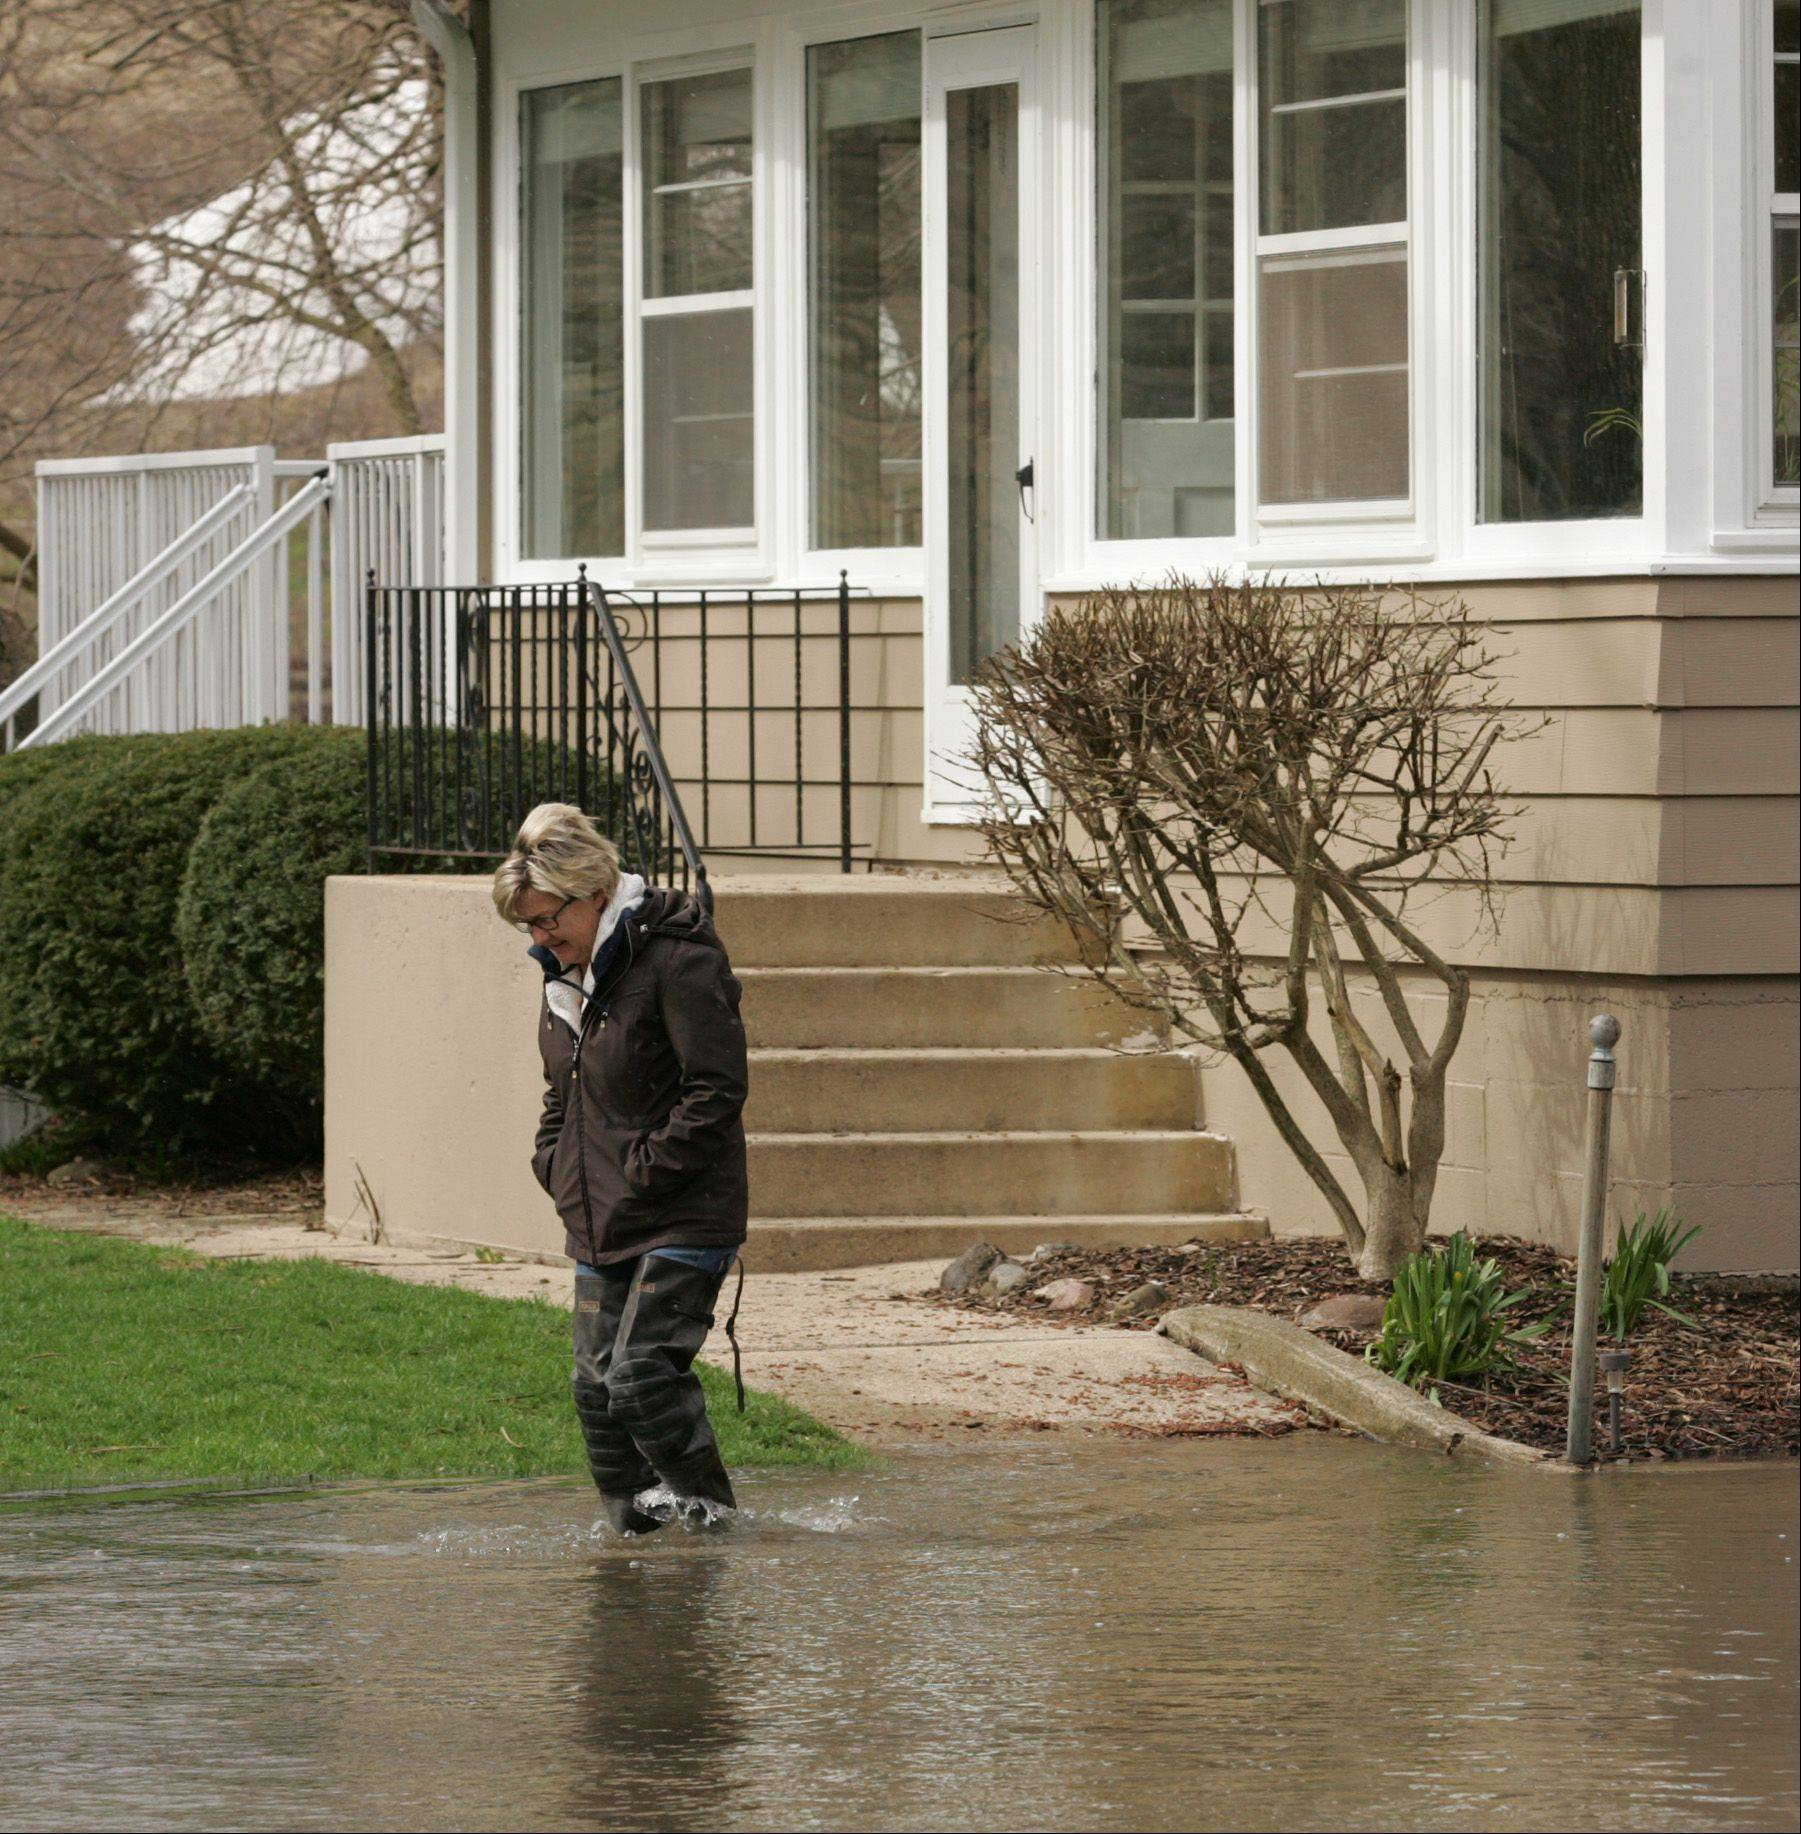 Nan Gagliano walks from her home along Wanaki Trail in Algonquin Friday morning where floodwaters have already surrounded her home. Despite the rising water, Gagliano says there's only moderate seepage in her basement. She and her husband Nick were most concerned with protecting the foundation of the home from the river's strong current.